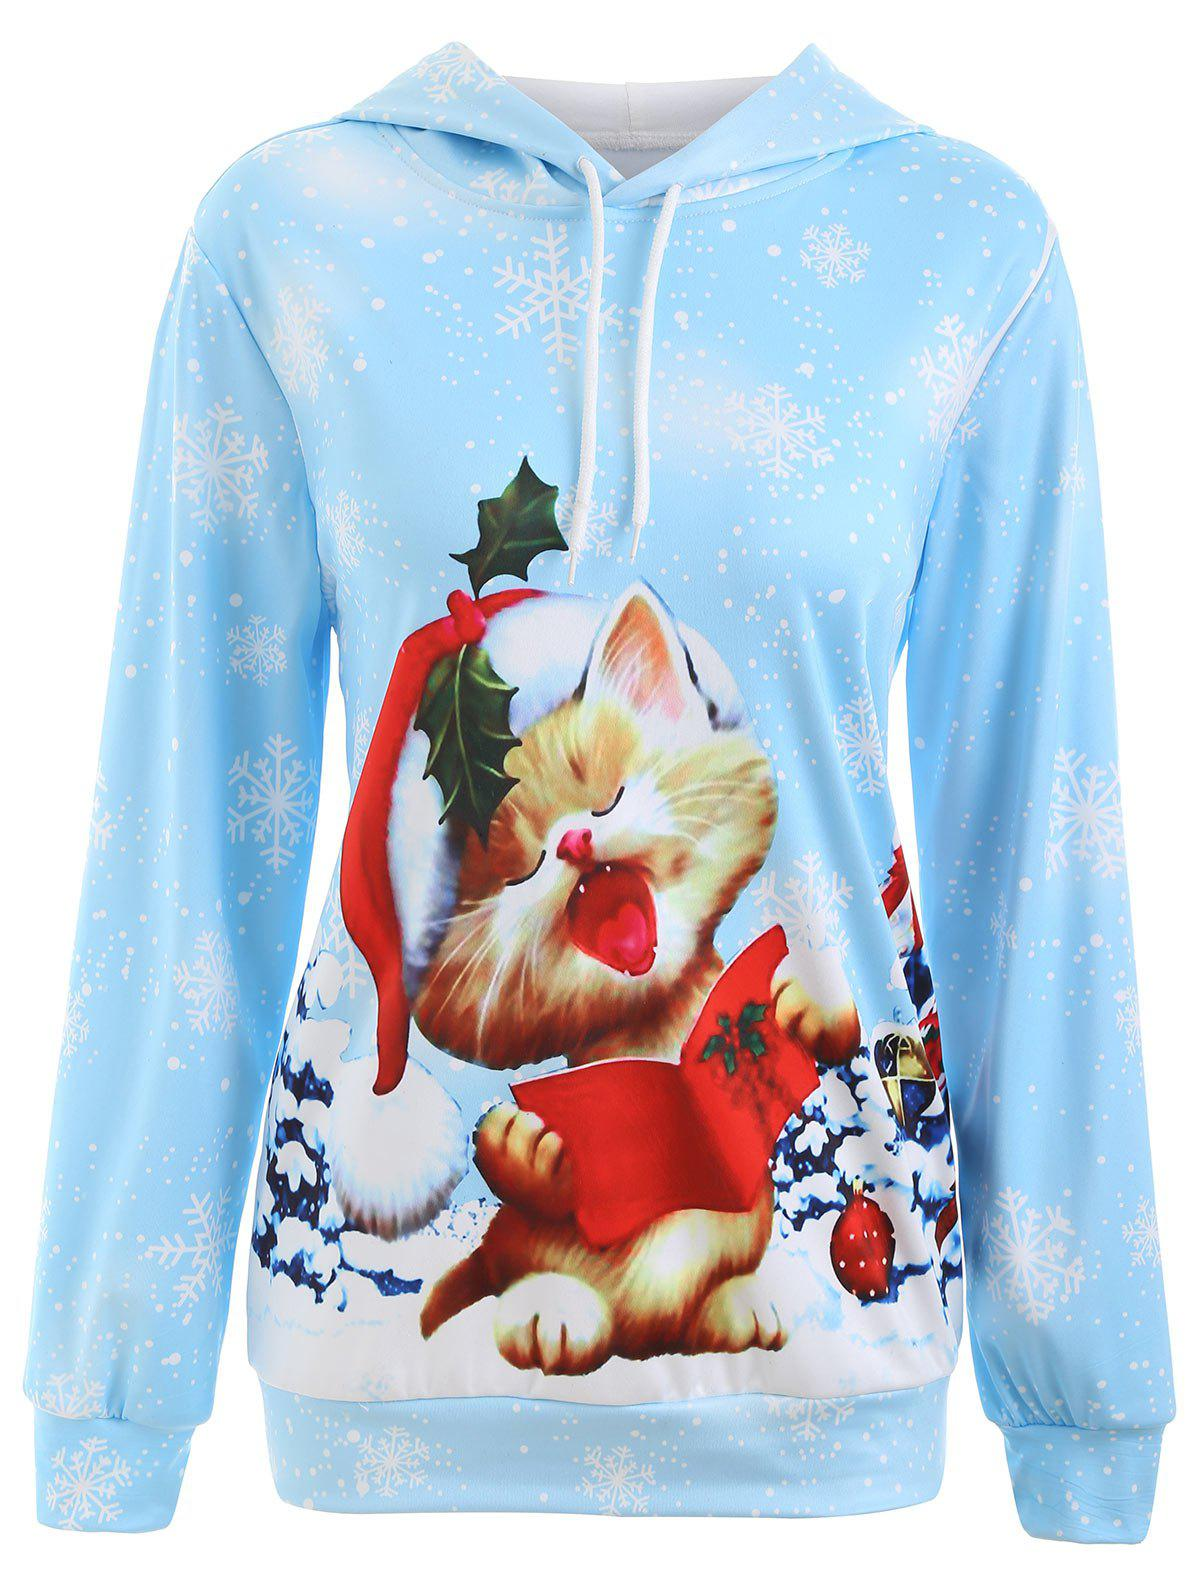 Christmas Cat Snowflake Printed HoodieWOMEN<br><br>Size: S; Color: LIGHT BLUE; Material: Polyester,Spandex; Shirt Length: Regular; Sleeve Length: Full; Style: Casual; Pattern Style: Animal,Plant; Season: Fall,Spring,Winter; Weight: 0.3500kg; Package Contents: 1 x Hoodie;